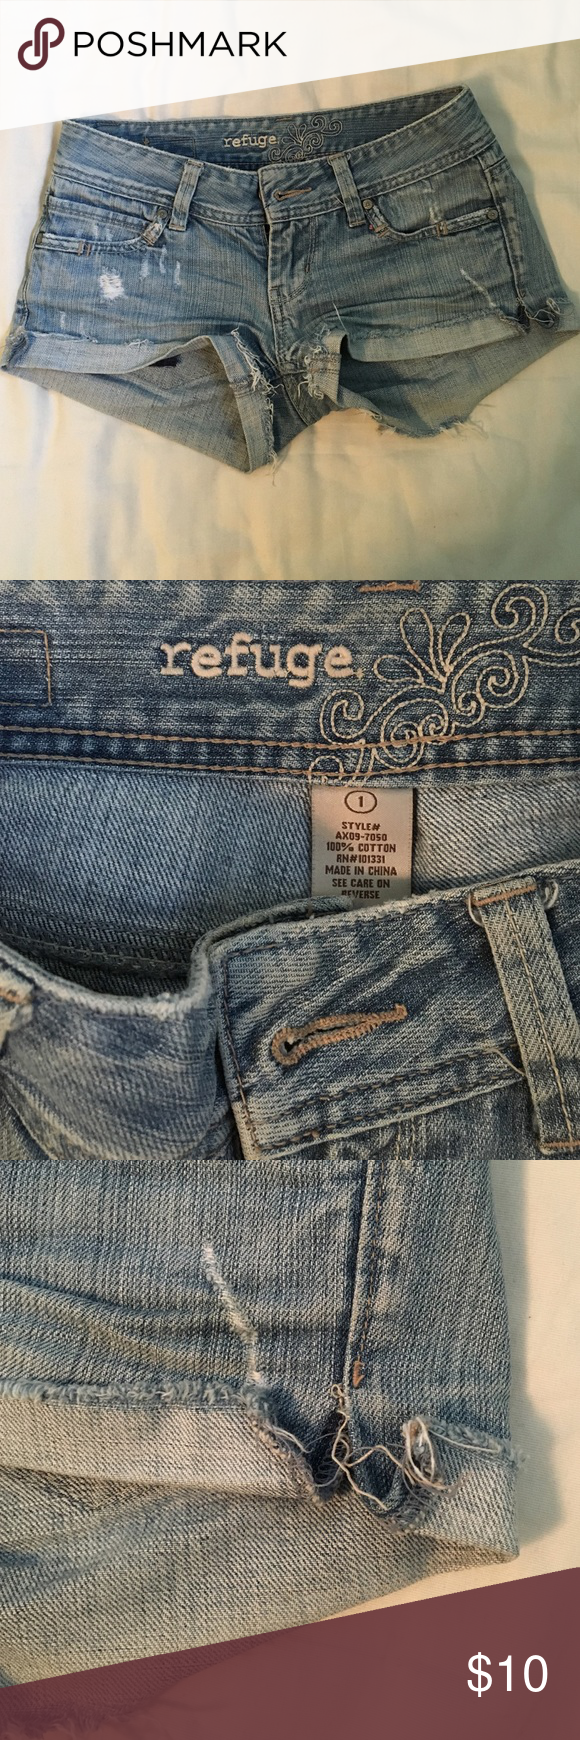 Destroyed denim jean shorts Destroyed denim shorts size 1 Juniors. Side of the shorts seam on the left is coming undone but it can be stitched back. Loved these shorts! Charlotte Russe Shorts Jean Shorts